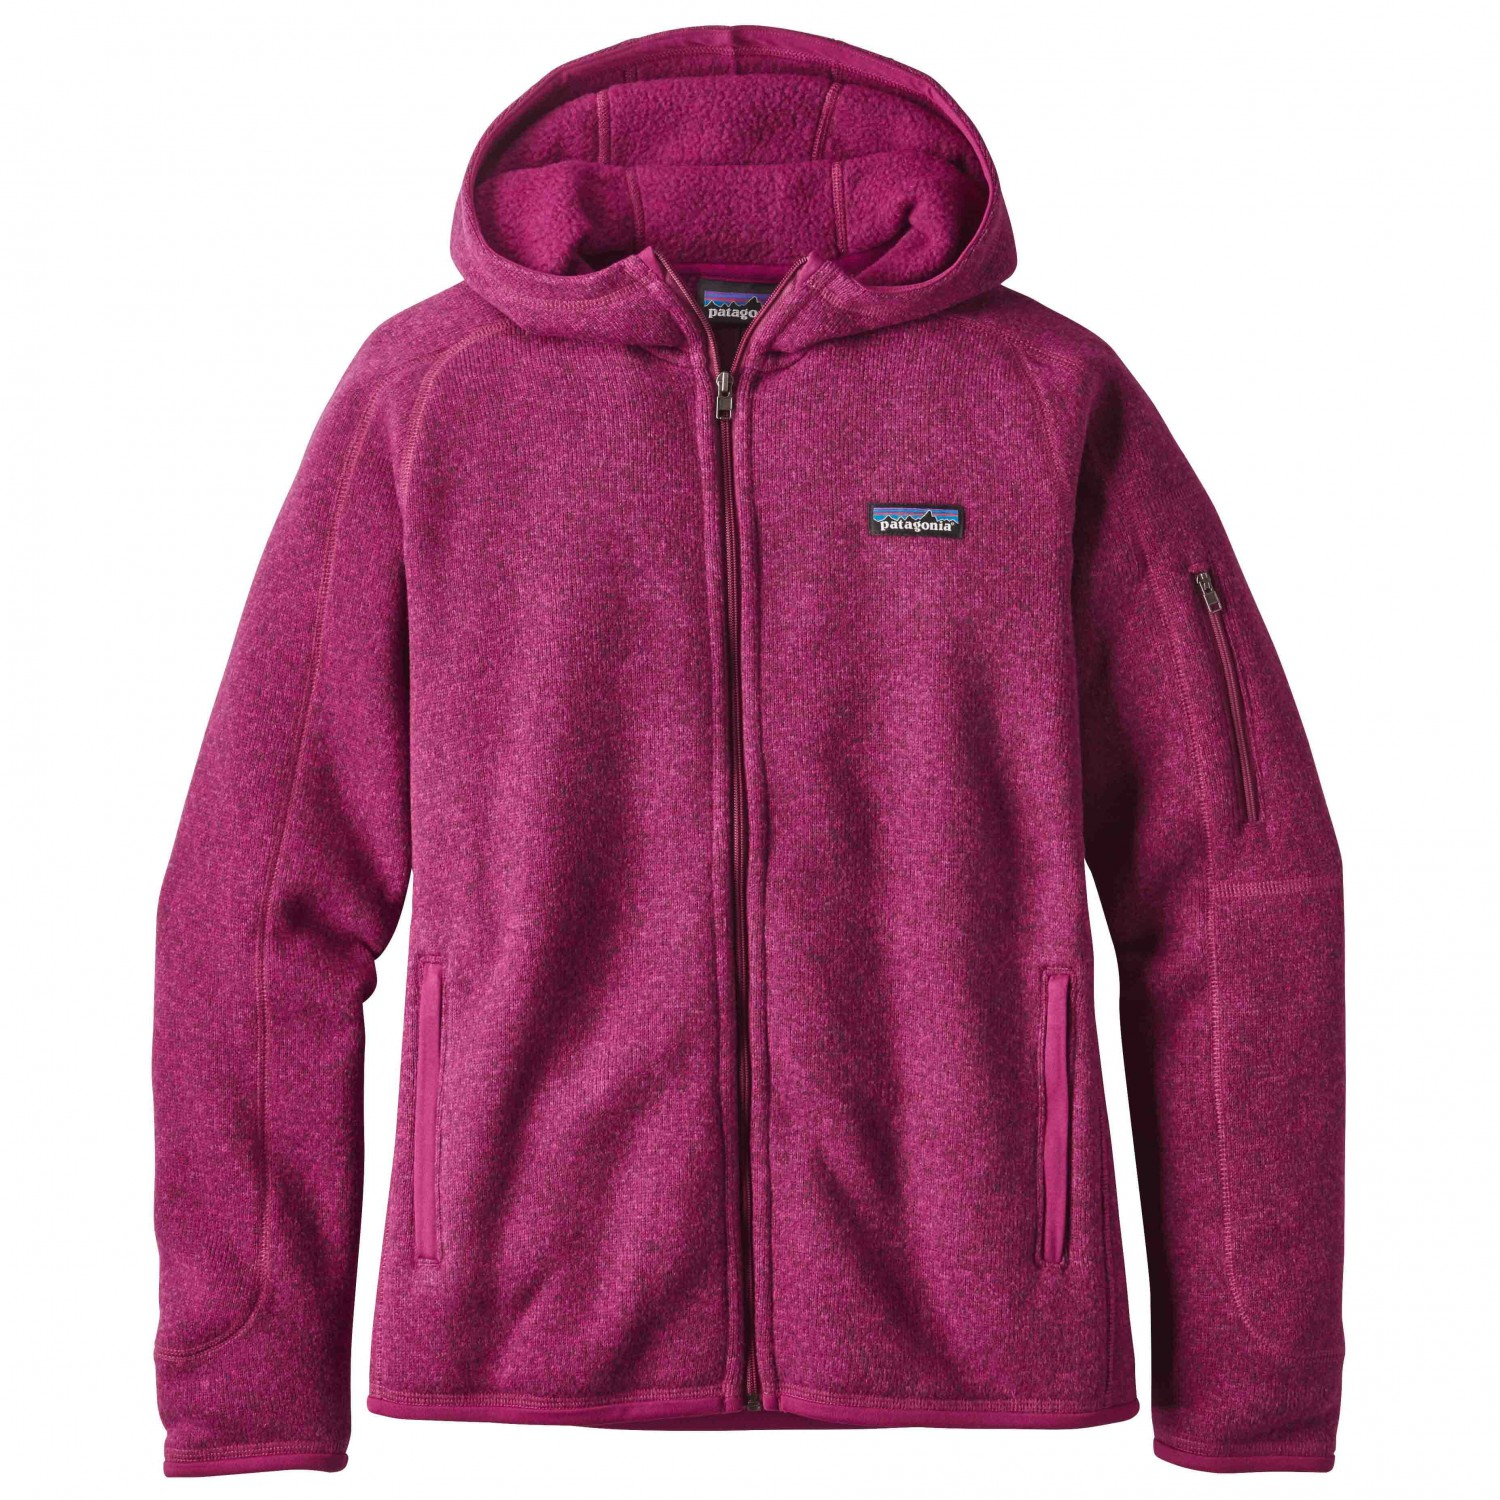 Better Sweater Hoody Patagonia